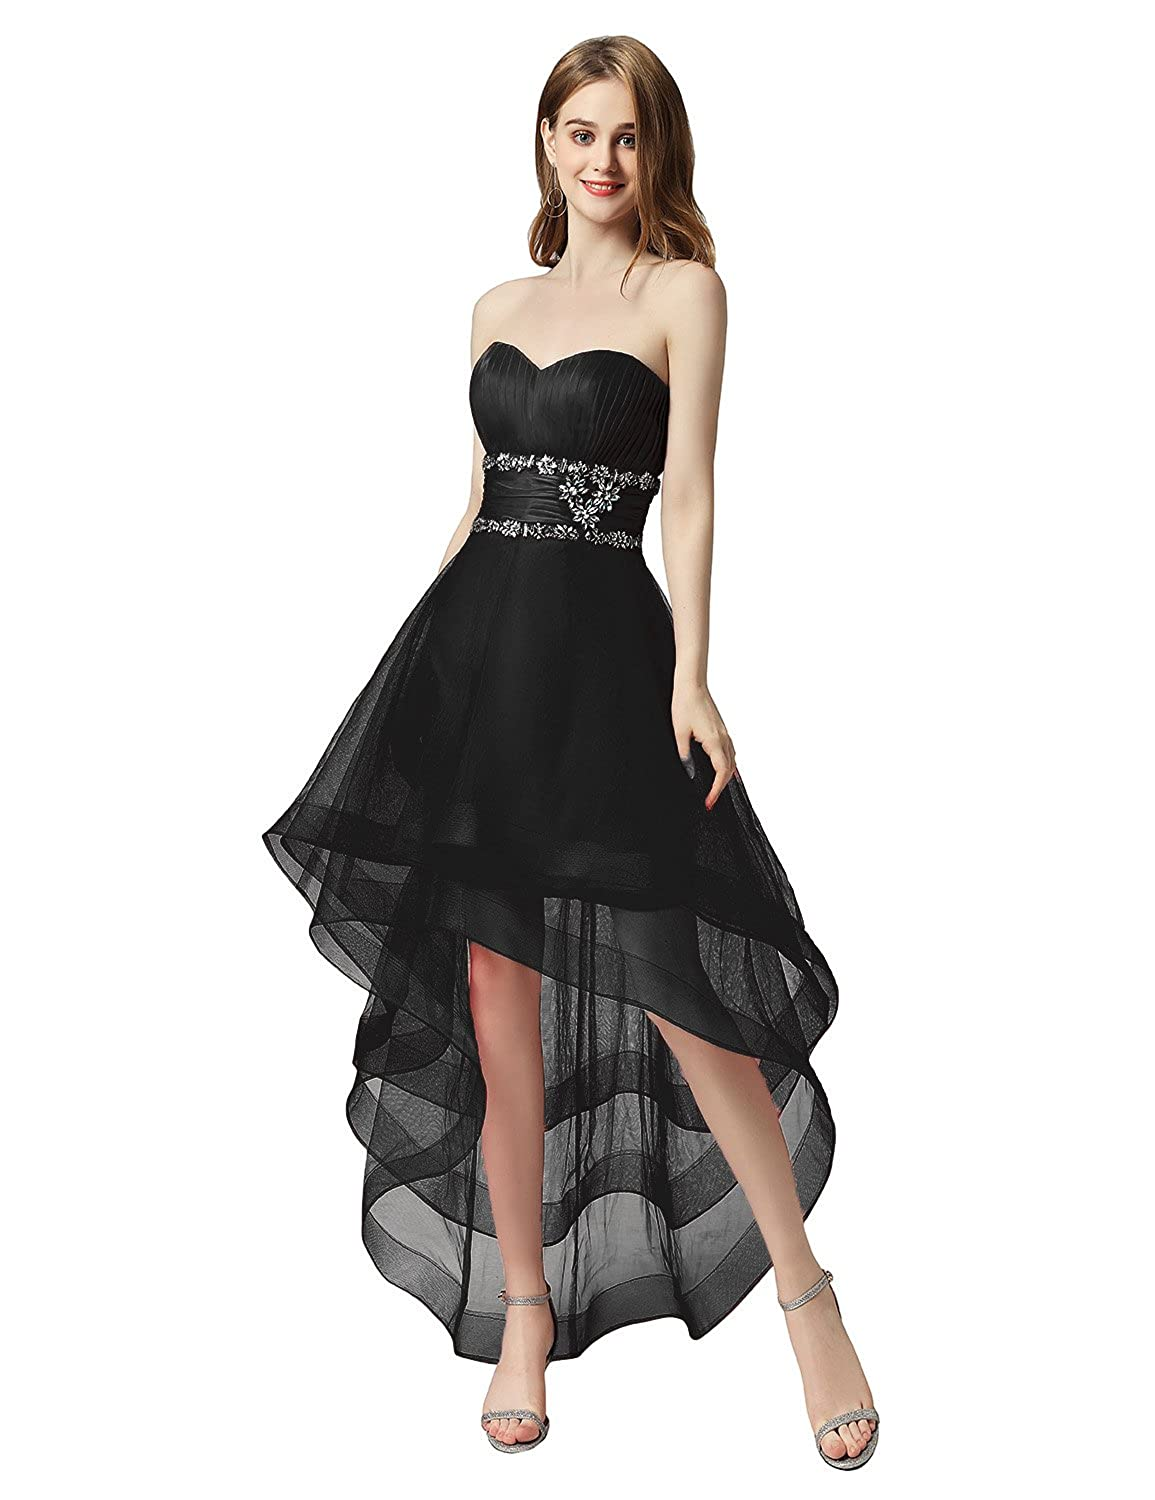 014black Sarahbridal Women's Tulle HiLow Beading Prom Dresses Evening Homecoming Cocktail Gowns